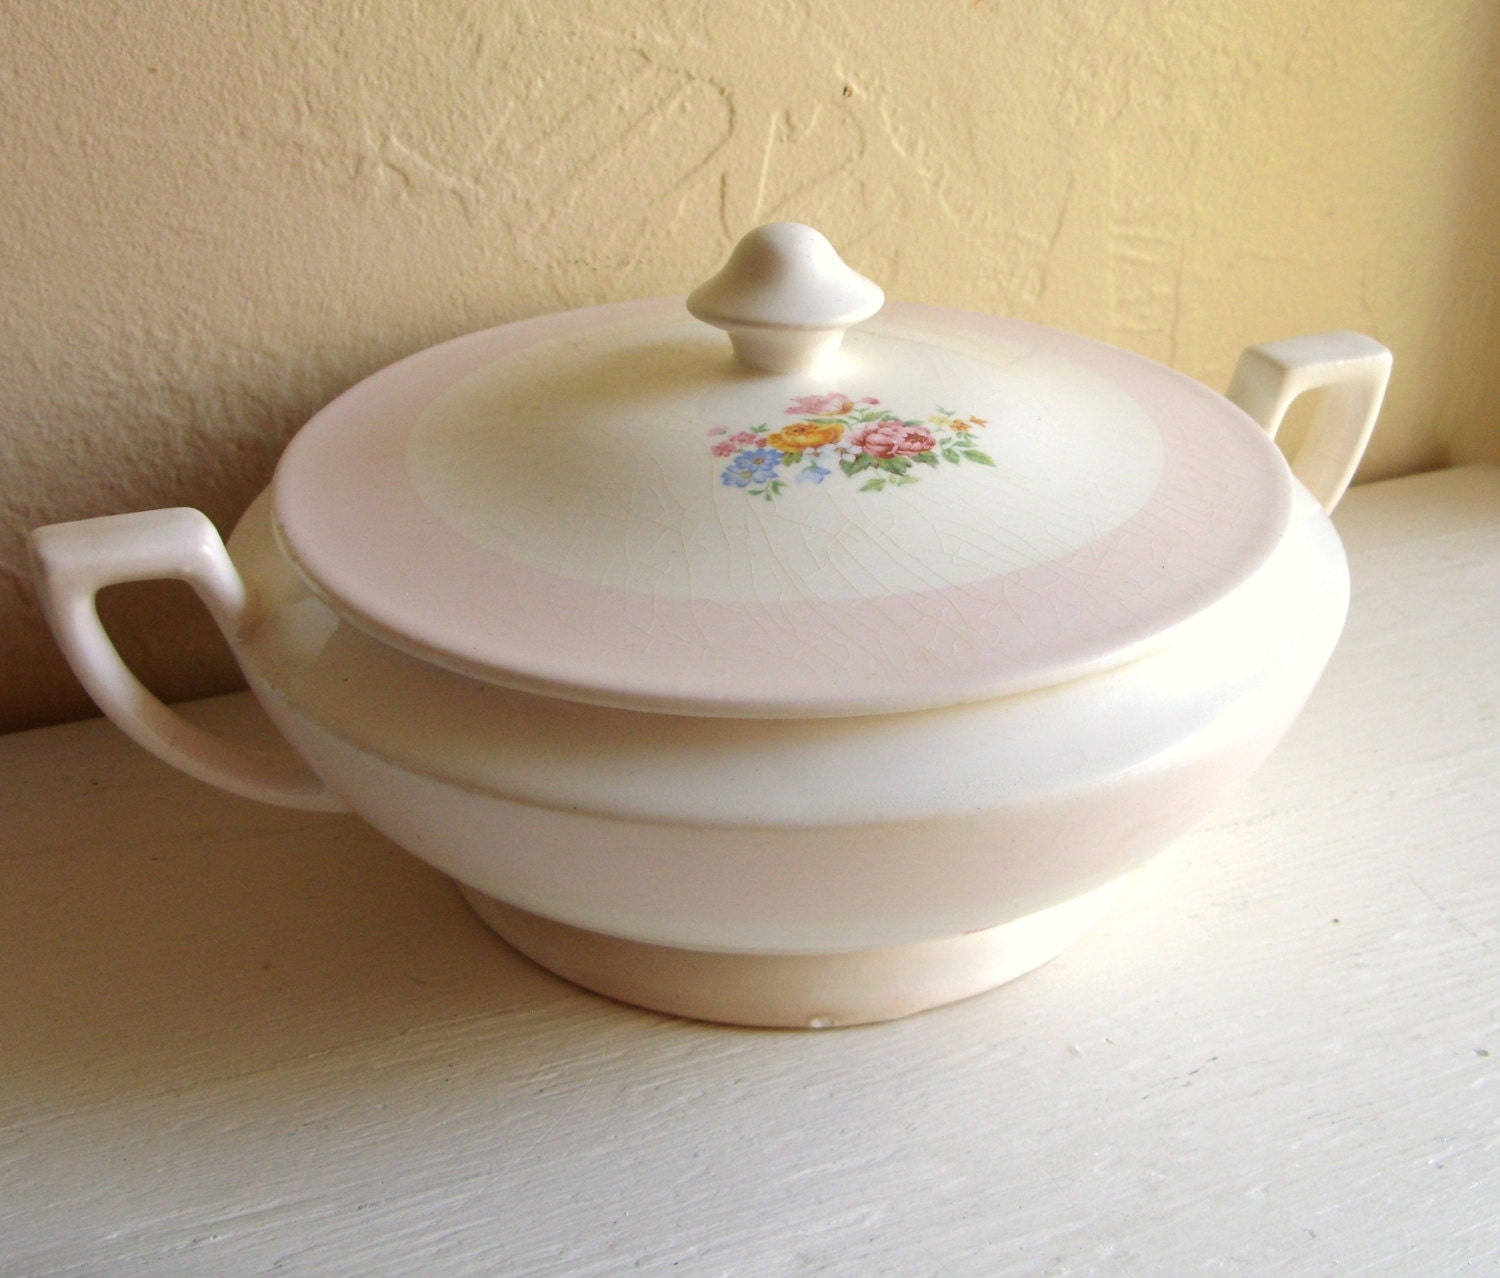 White And Pink Porcelain Soup Tureen Bowl With Lid And Handles